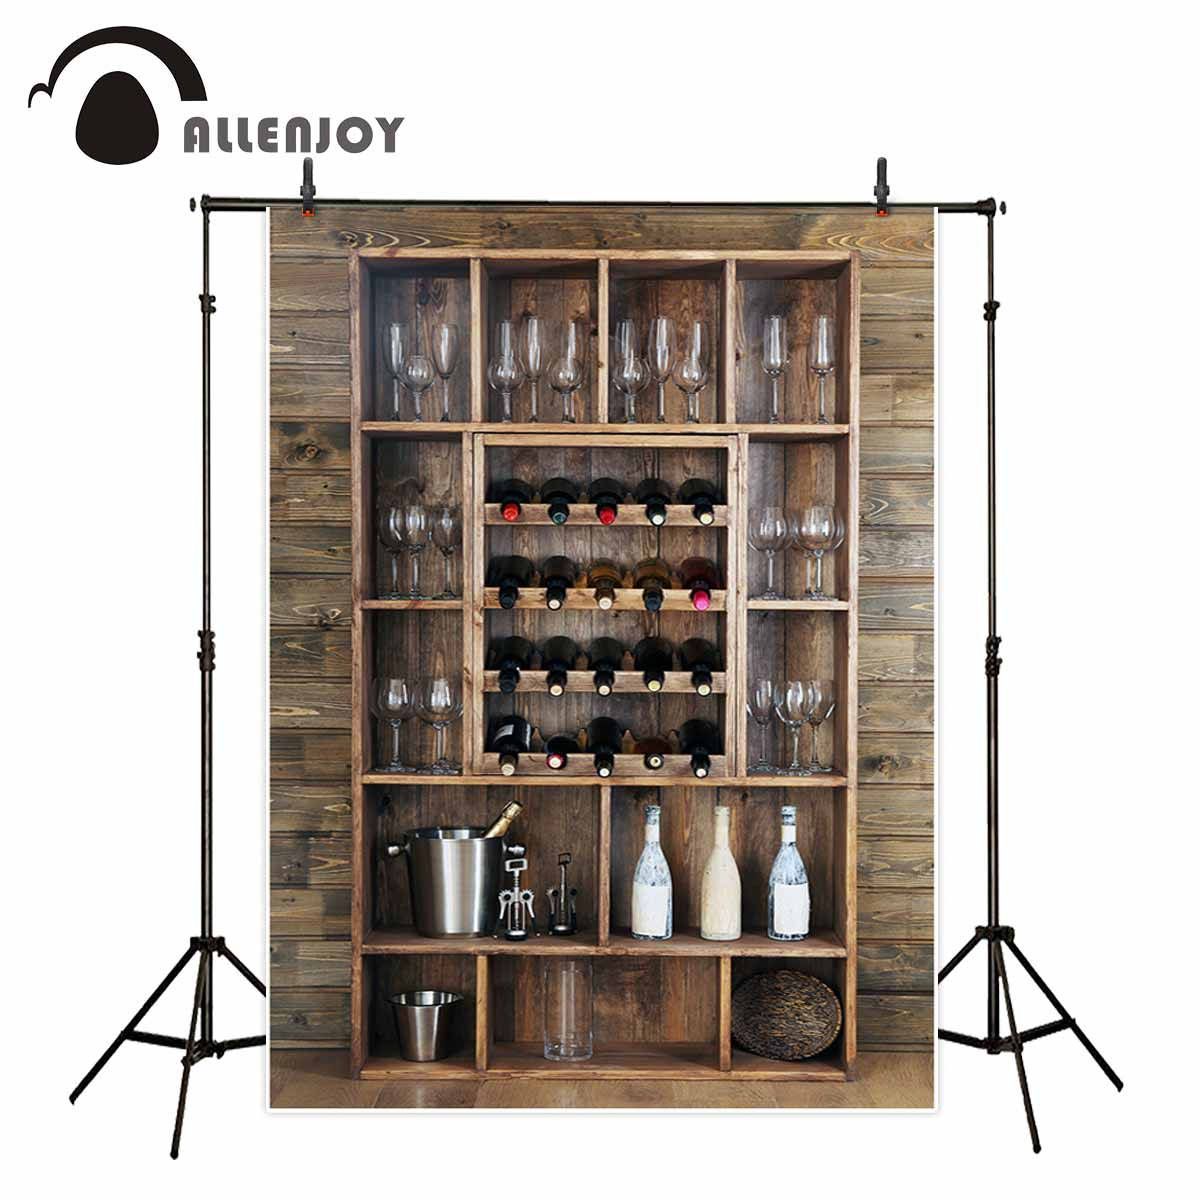 Allenjoy photography backdrops wine cabinet wine glasses wood board background for a photo shoot background vinyl